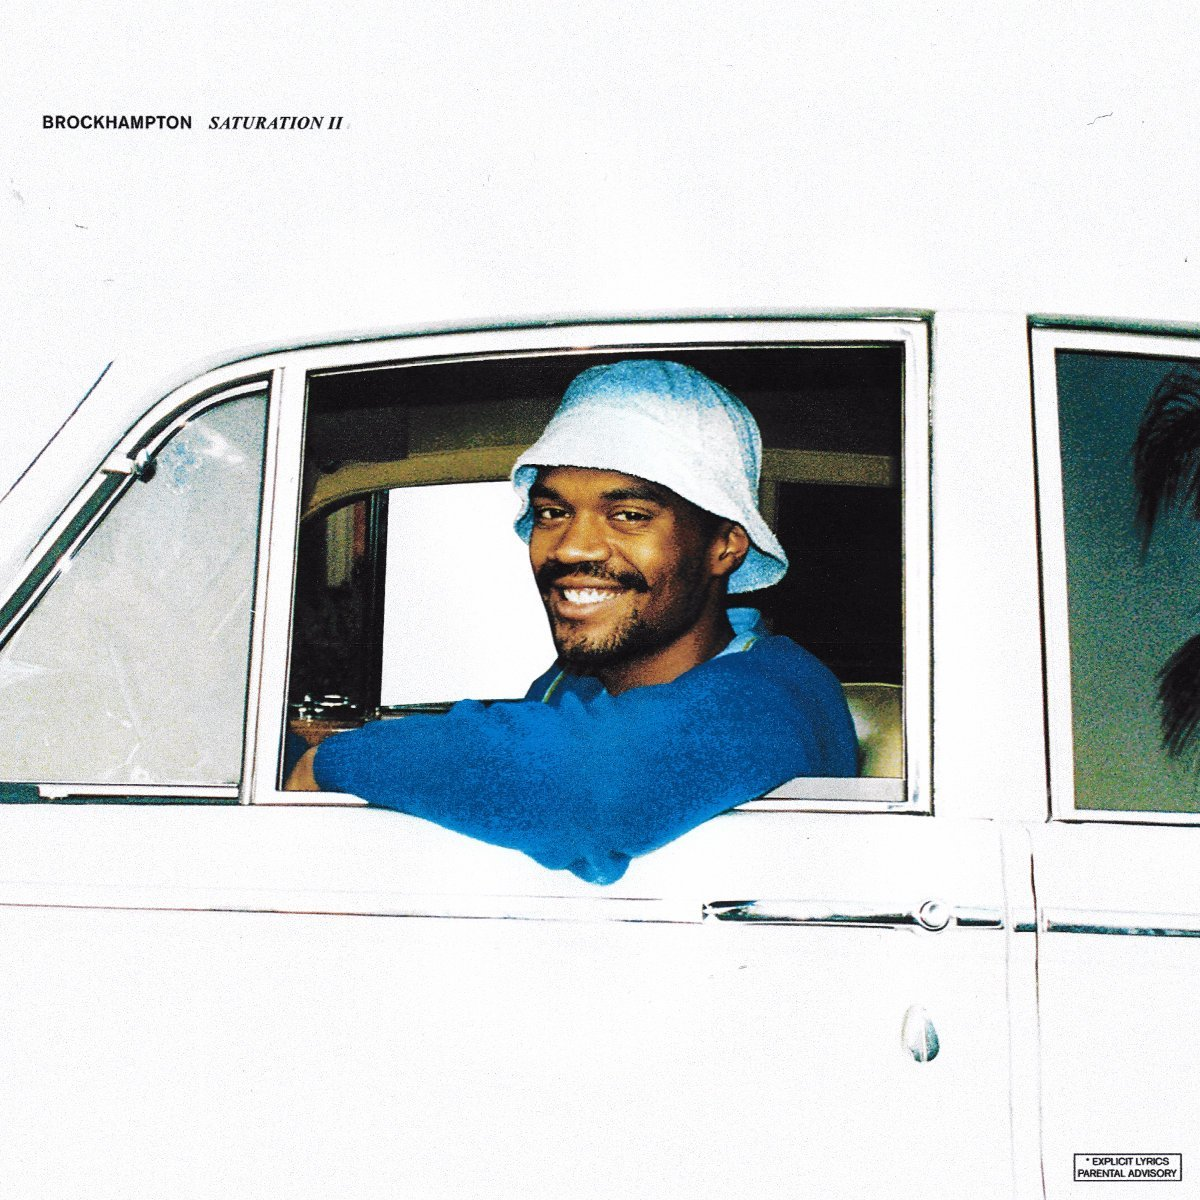 brockhampton saturation 2